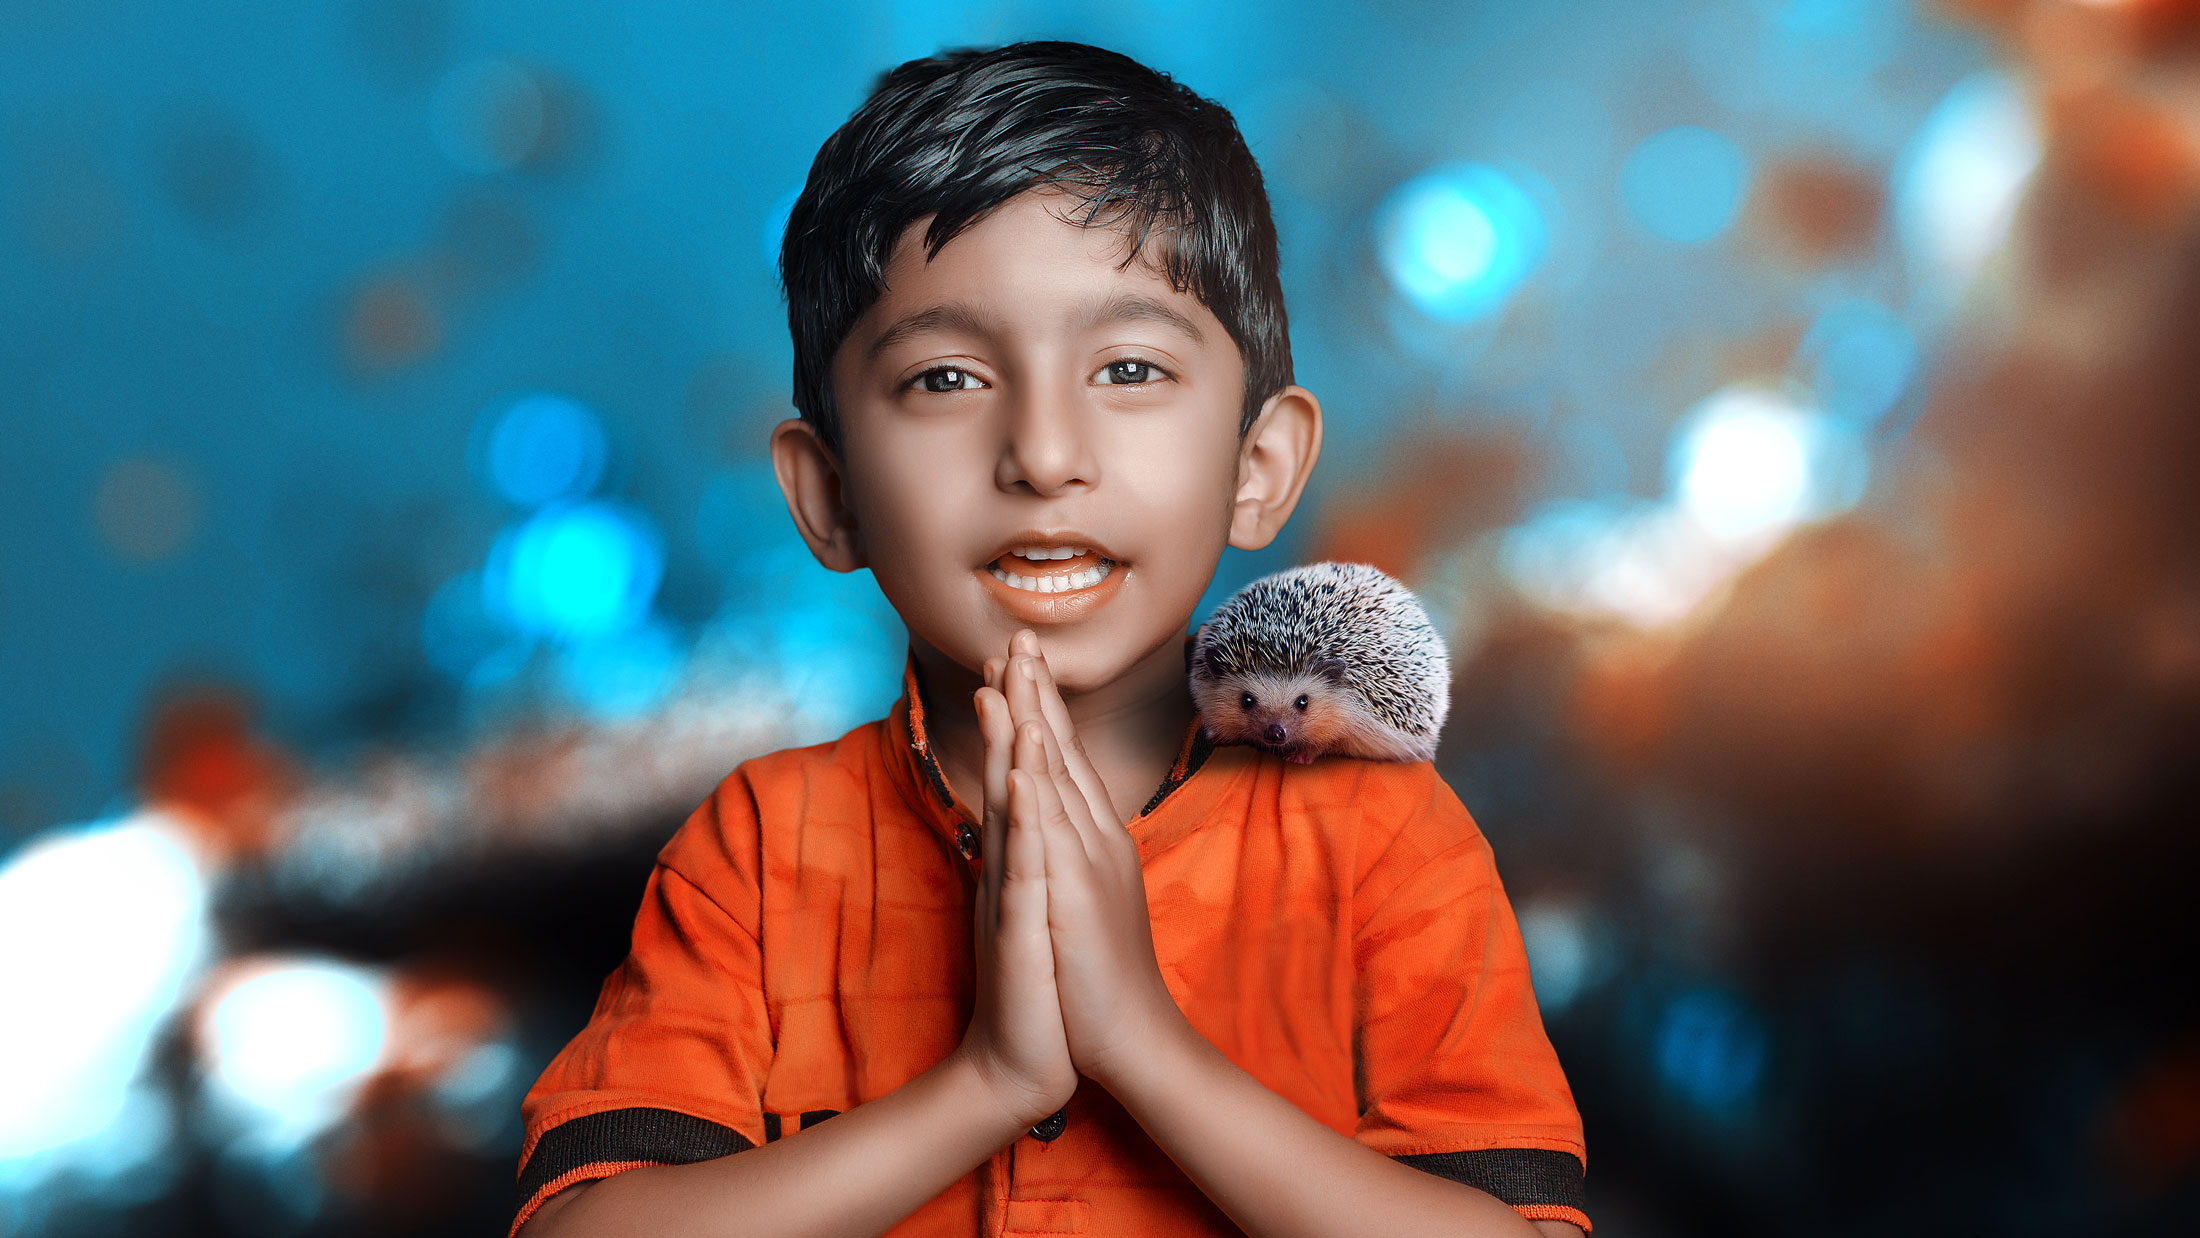 Adorable cute Indian asian caucasian boy child saying namaste welcoming with hedgehog on shoulder on bright vivid bokeh background at night front view looking at camera